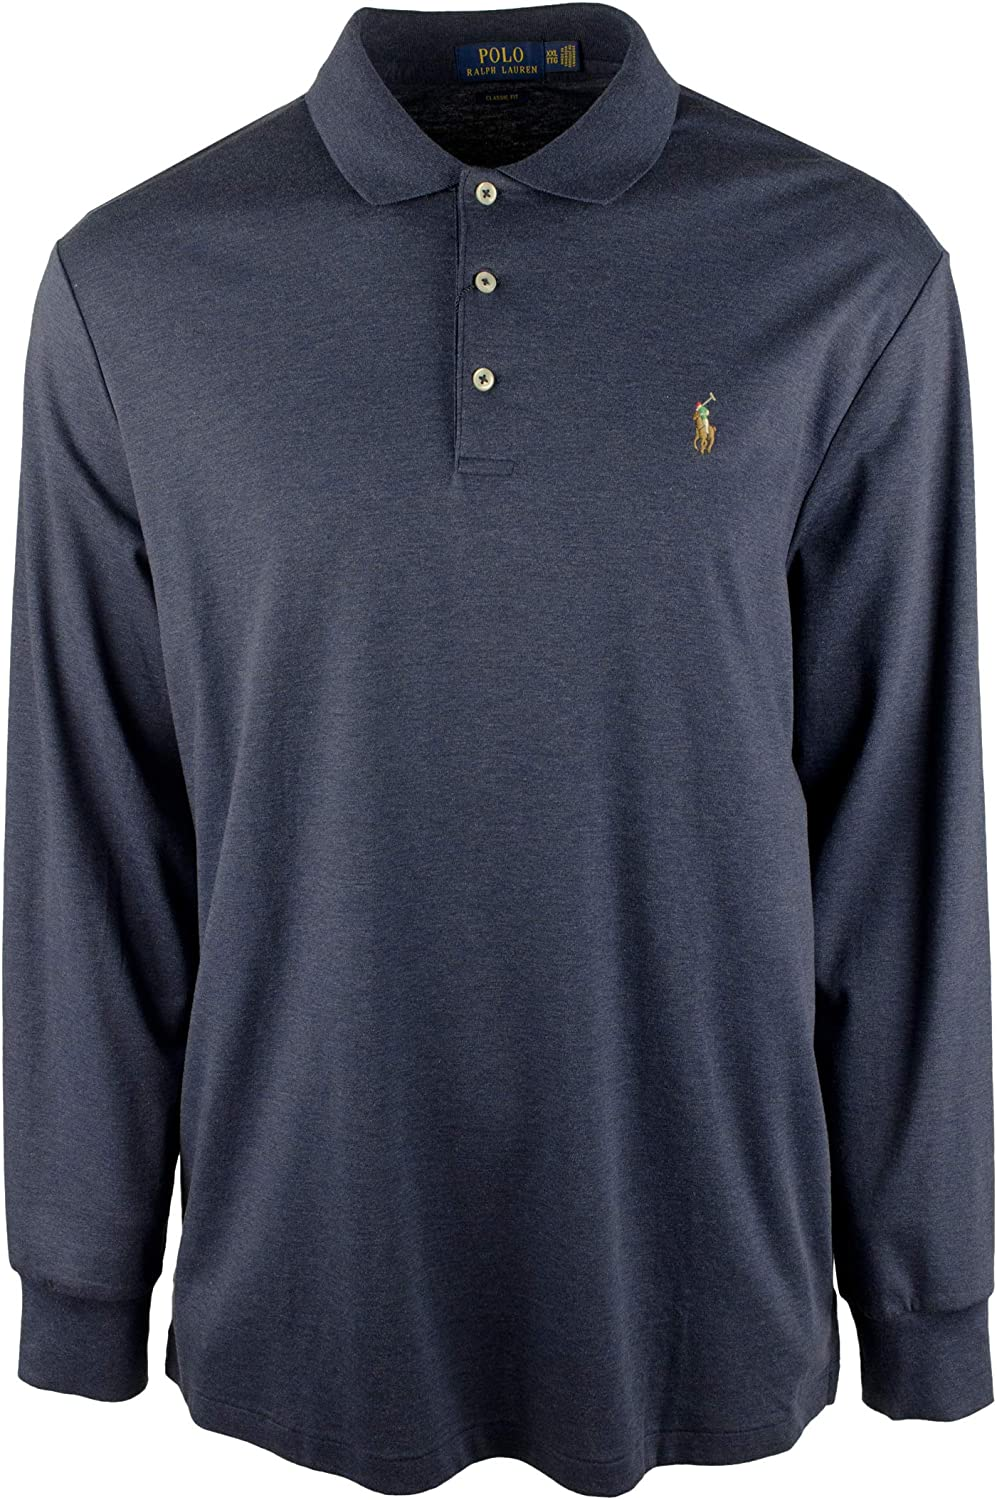 Men's Big and Tall Classic Fit Long Sleeves Polo Shirt